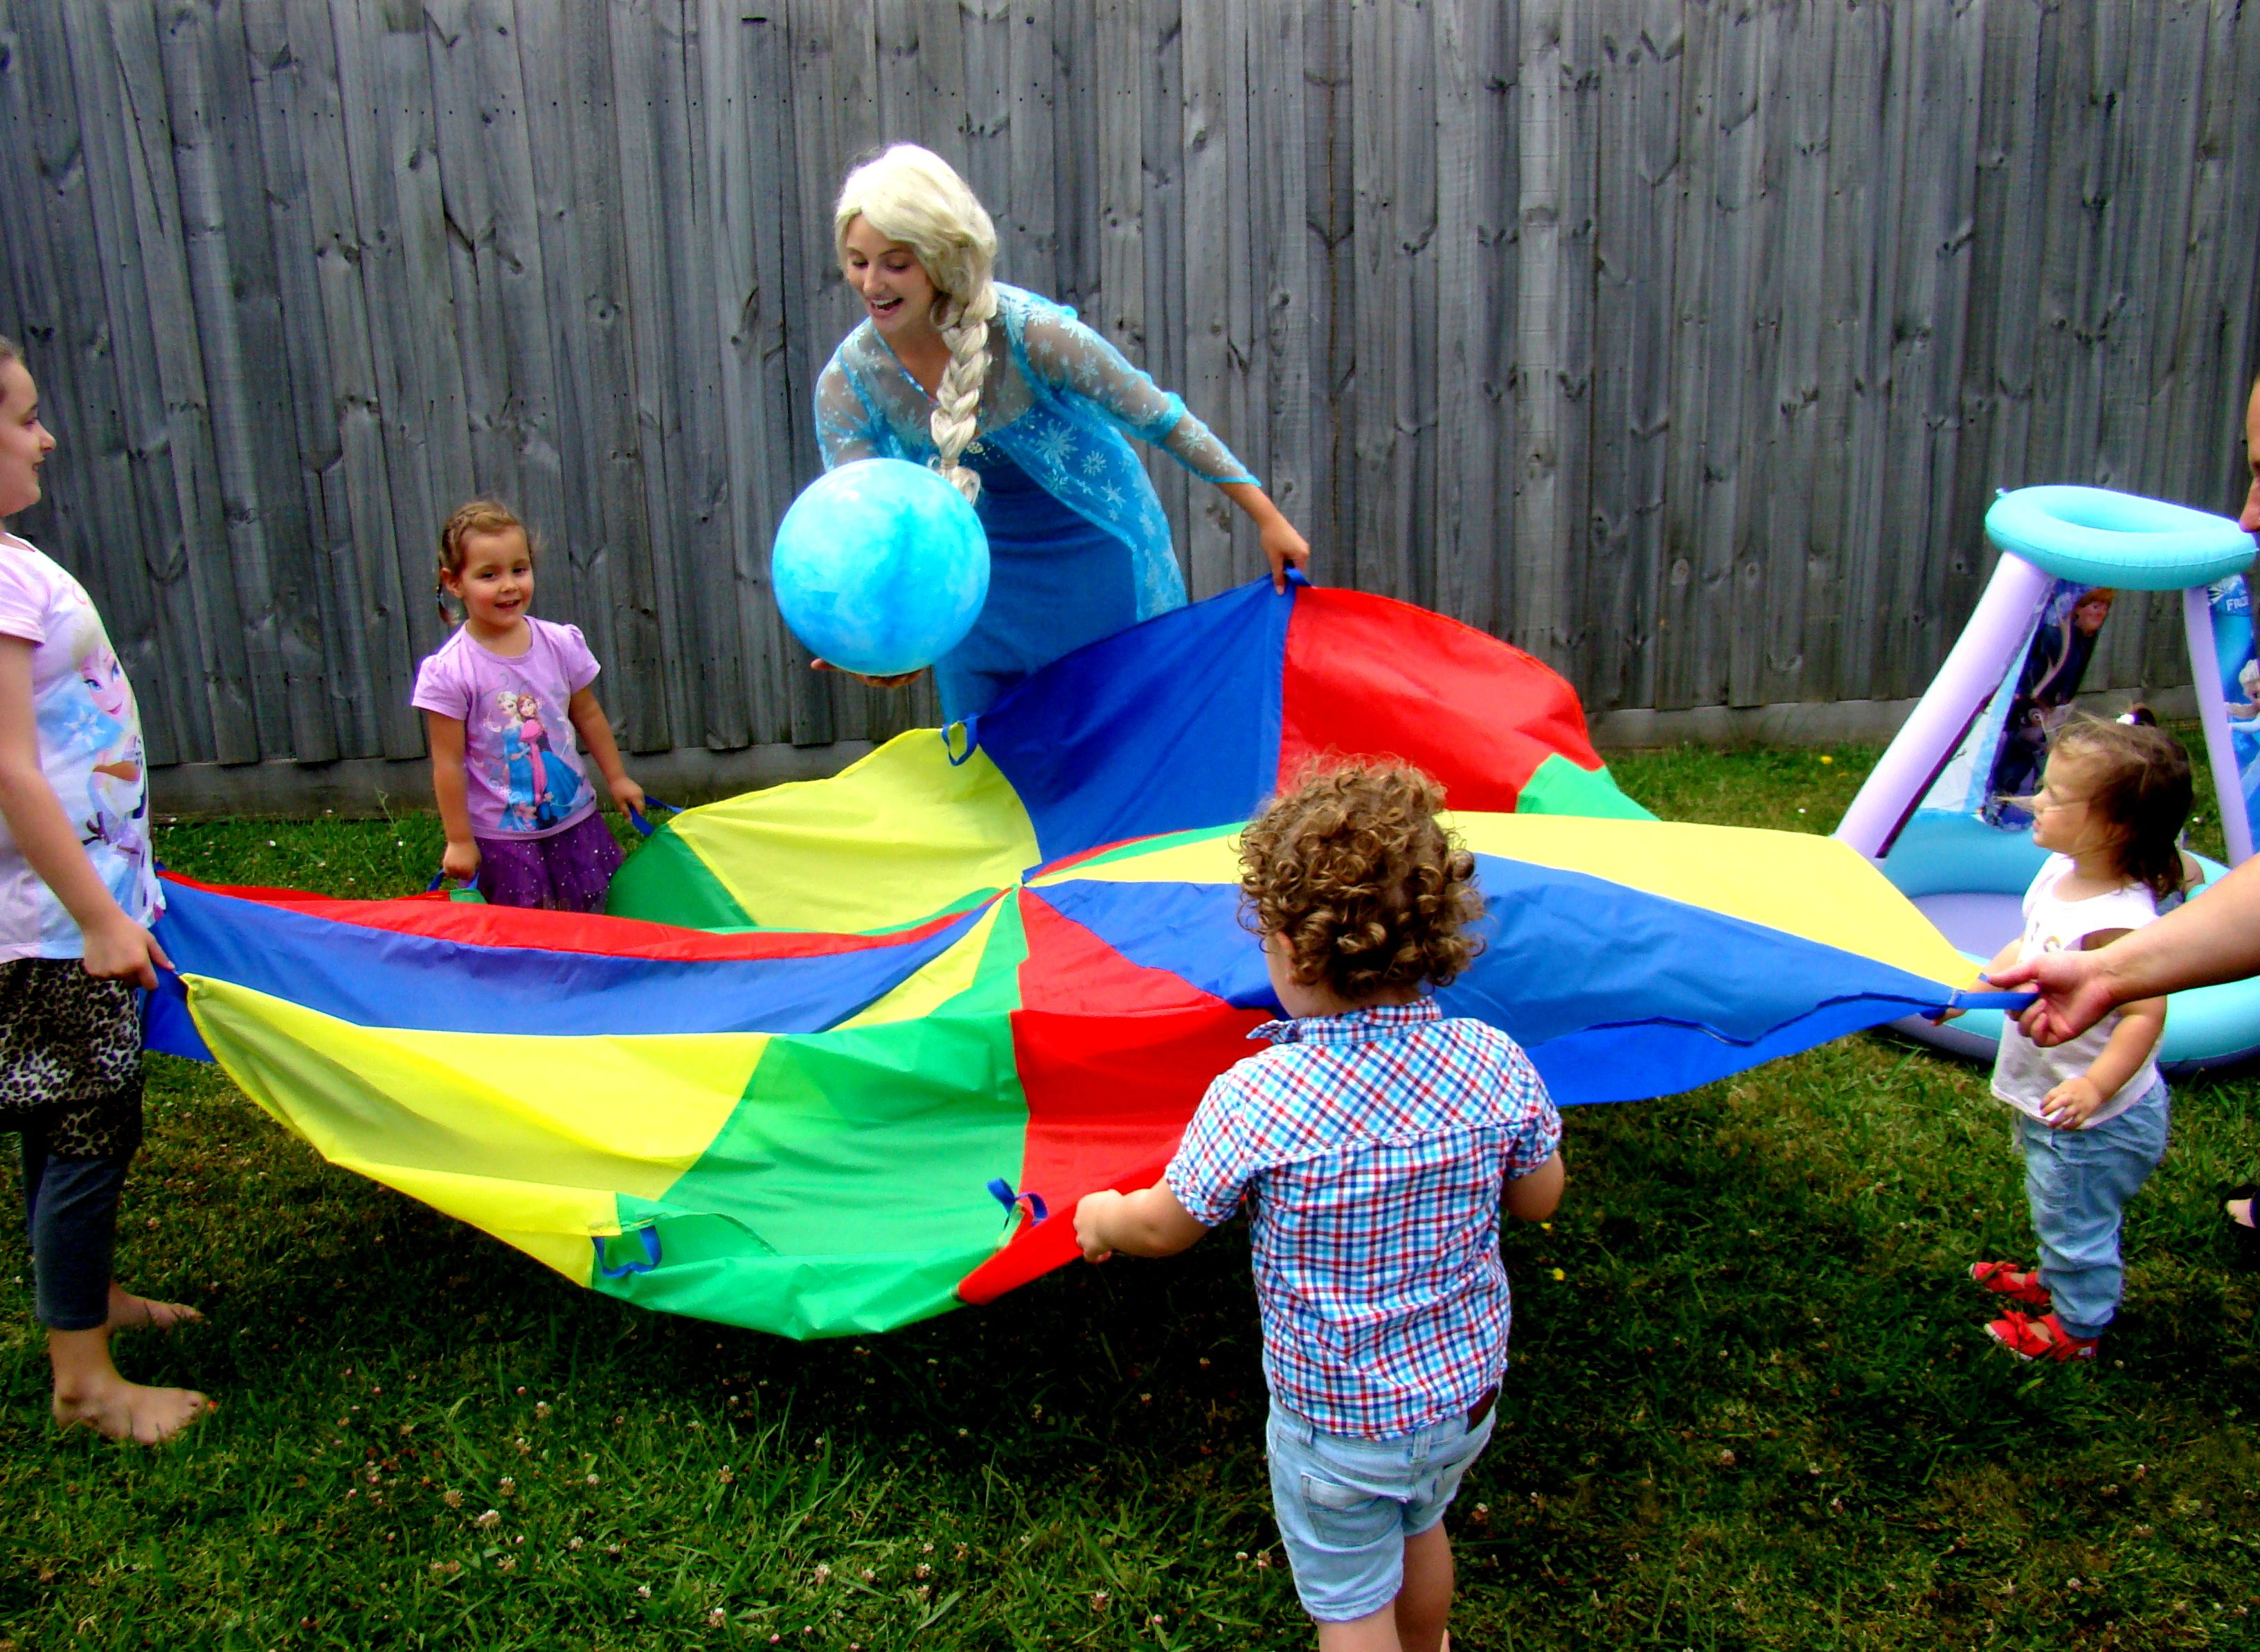 Childrens Party Entertainer Packages Catering To All Kids This - Children's birthday parties melbourne